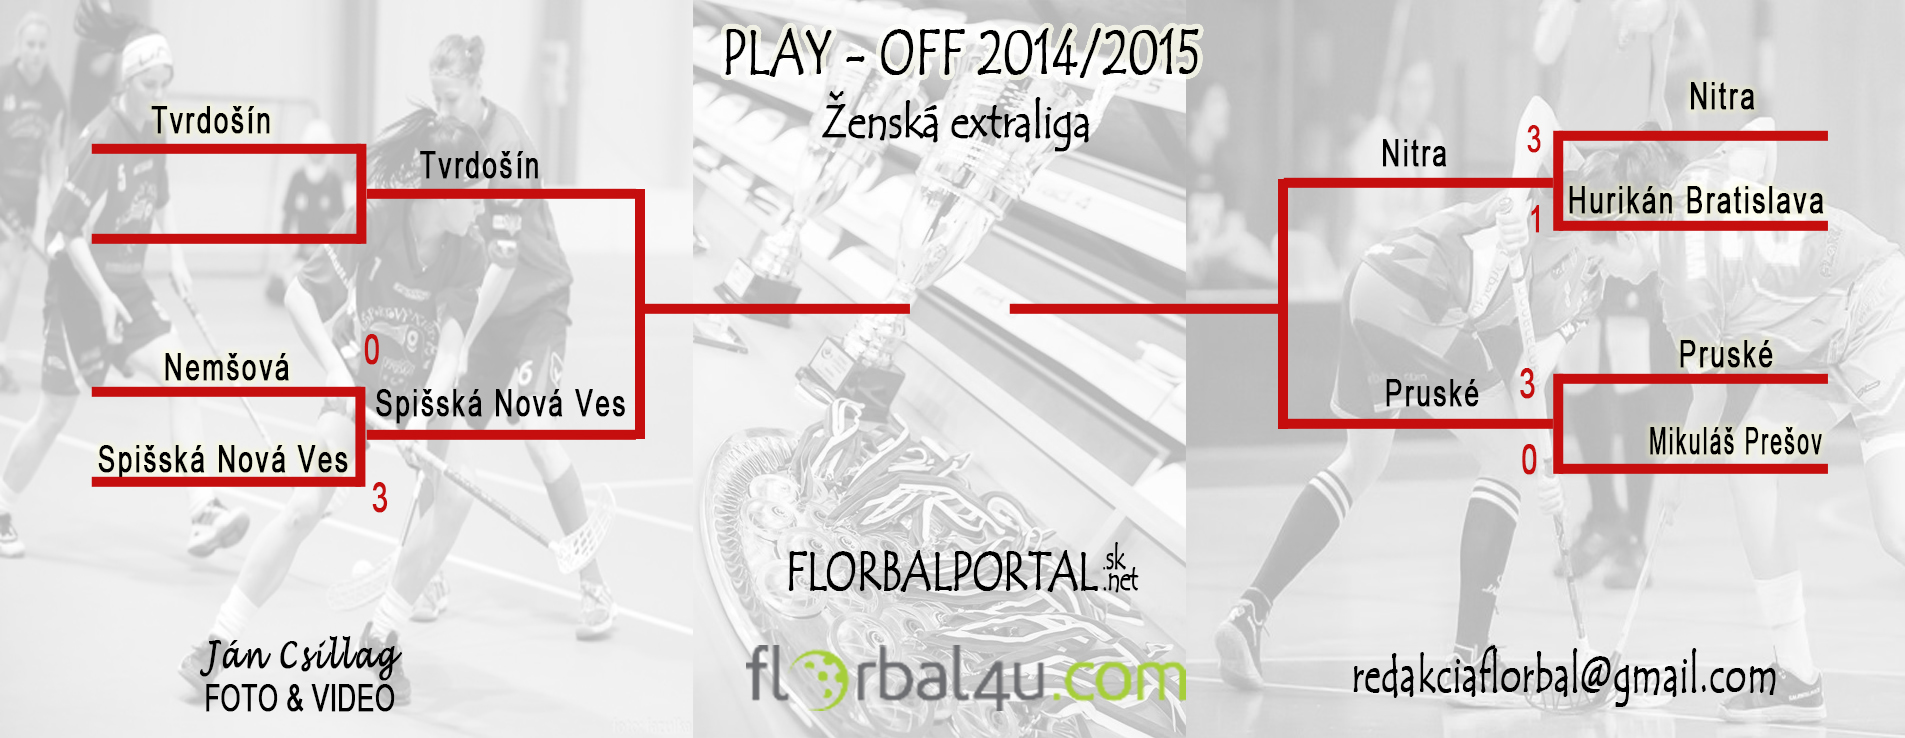 play-off-zeny-2015.b